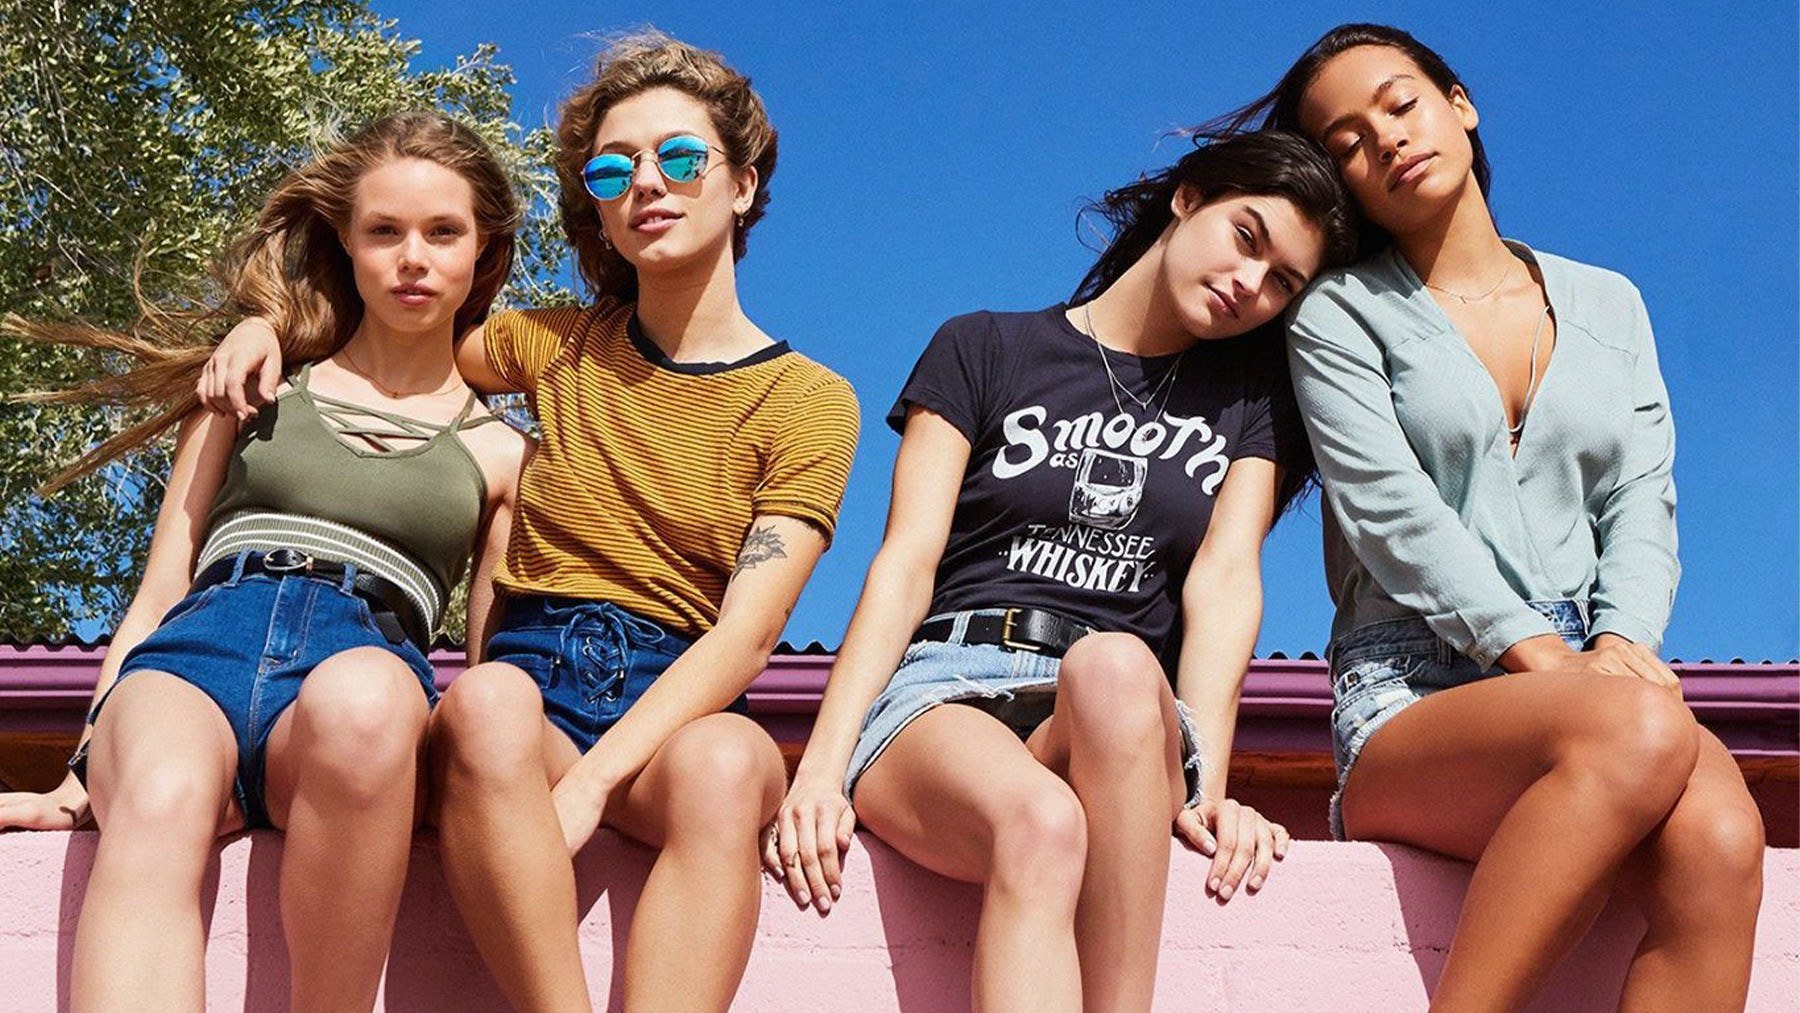 Urban Outfitters is the latest international mass market brand to see their plans hit a snag in the China market. Urban Outfitters.